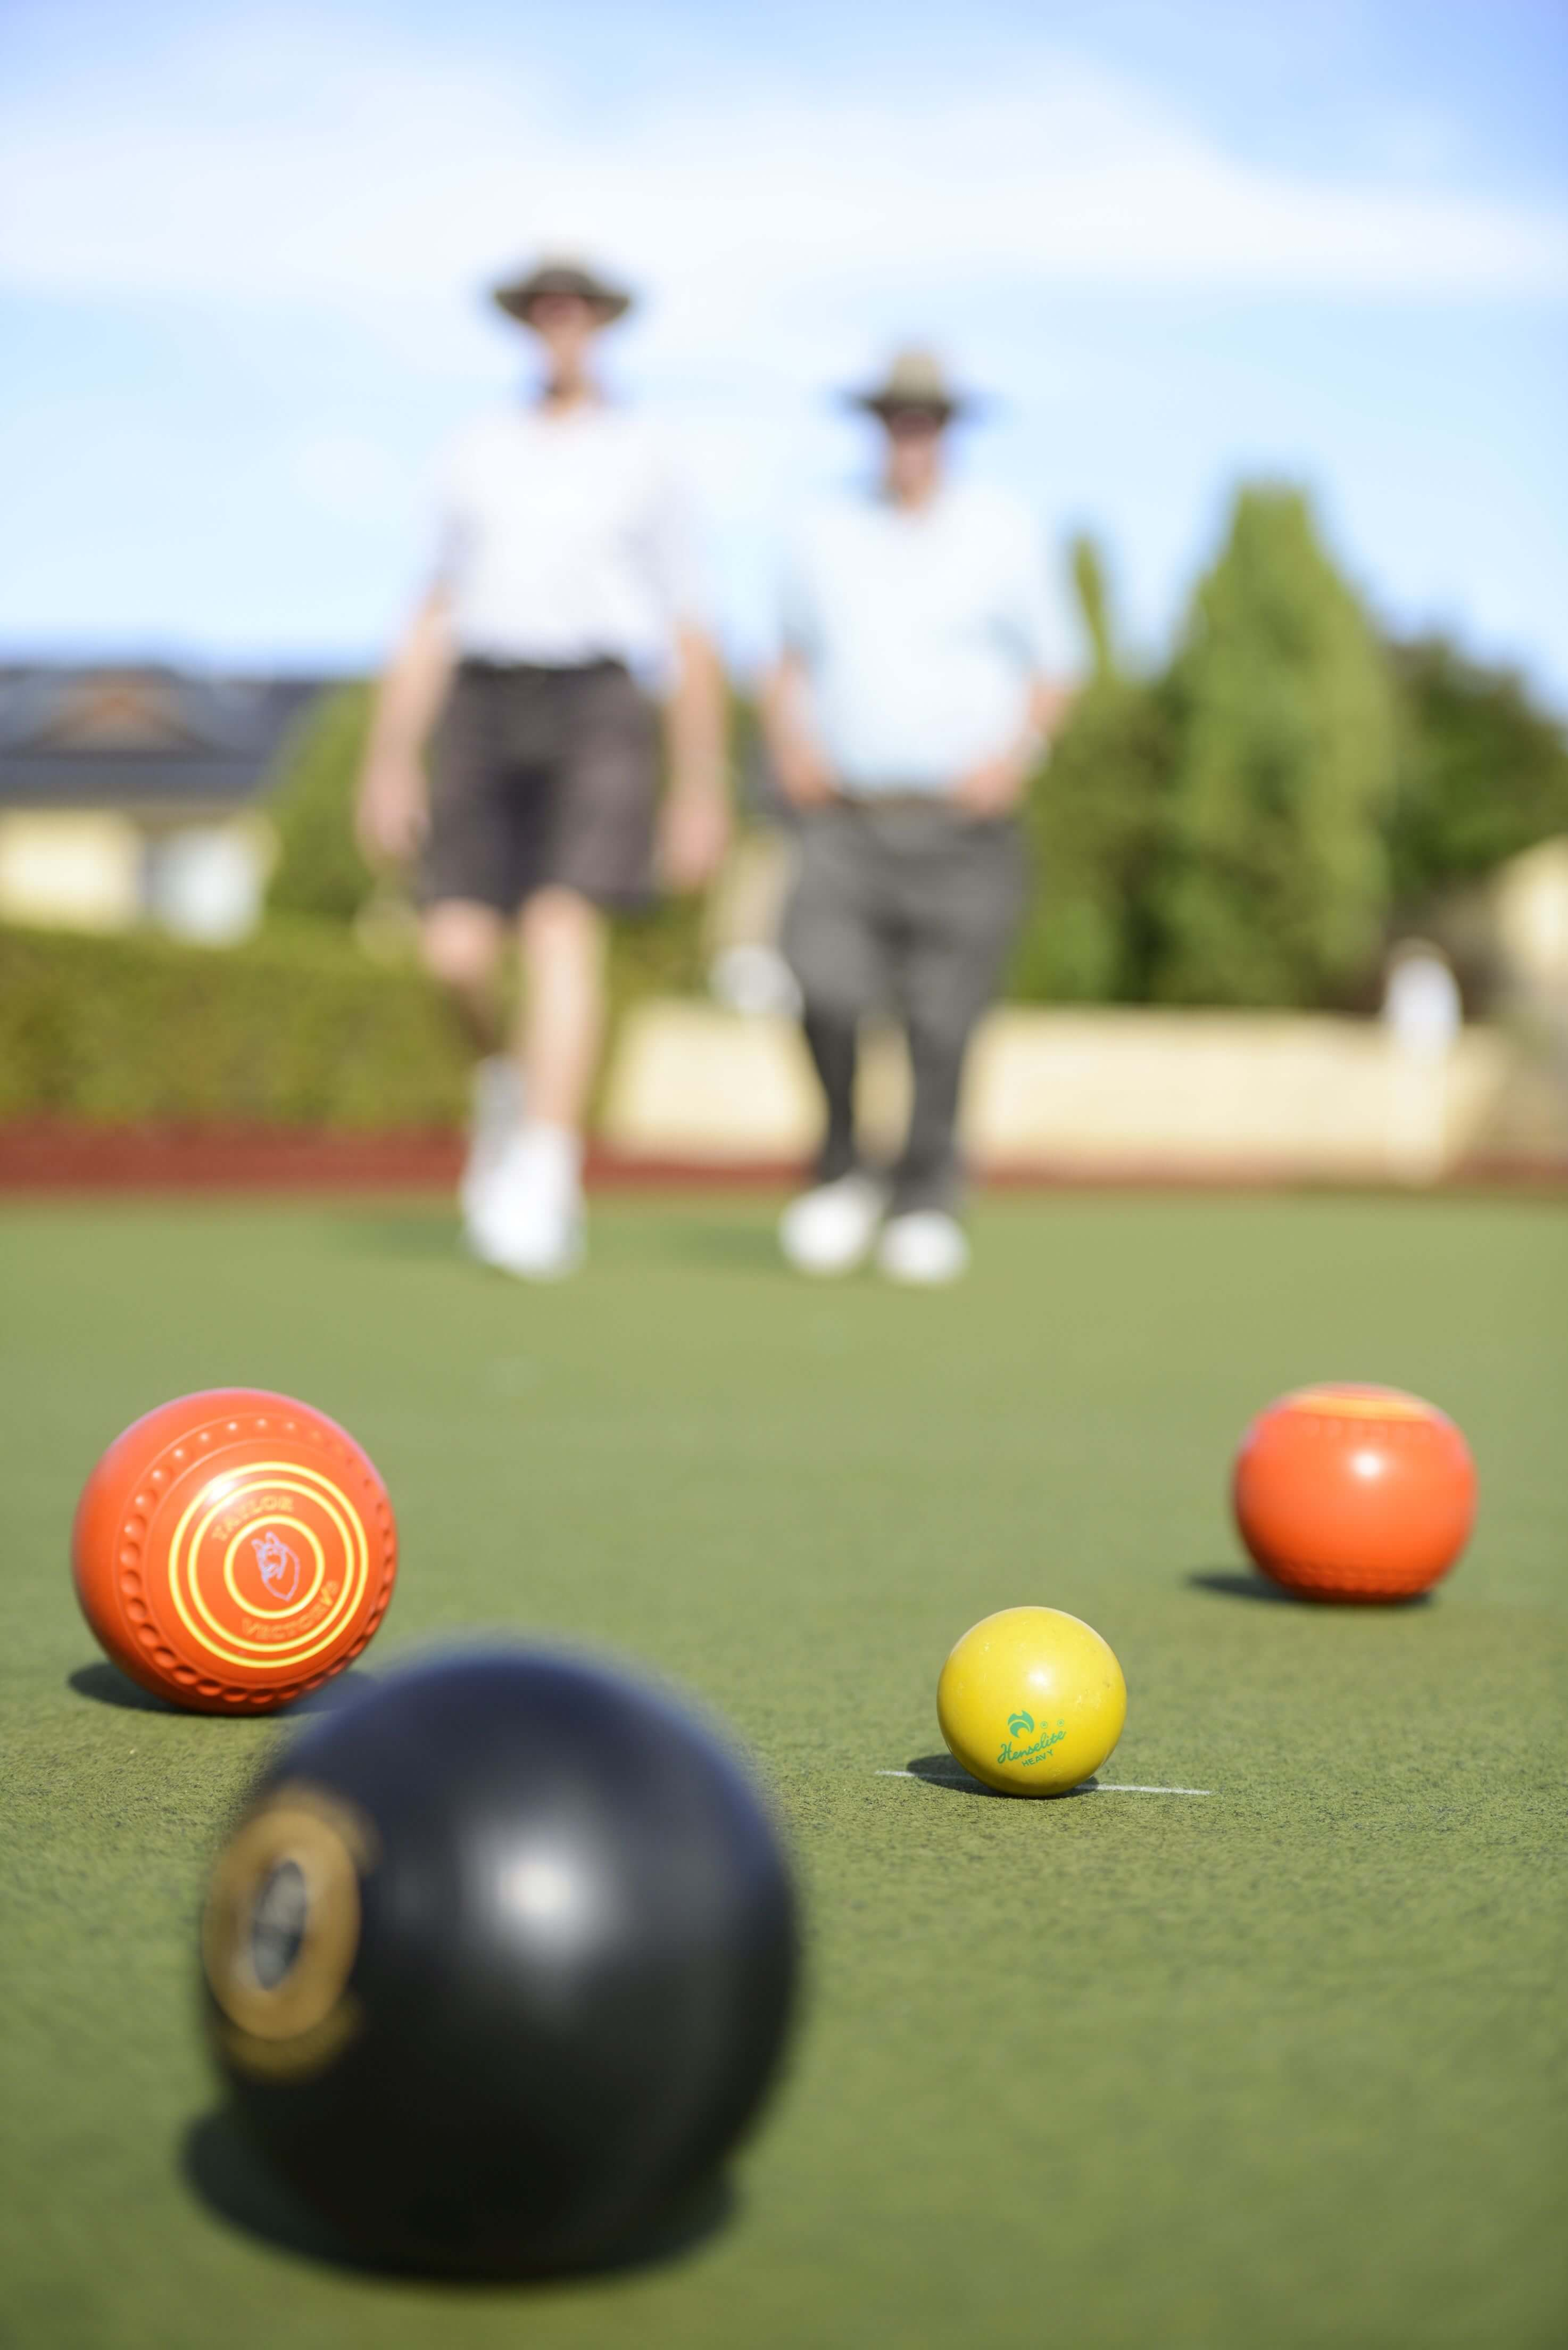 Artistic photo of a group of lawn bowls at a St Ives retirement village